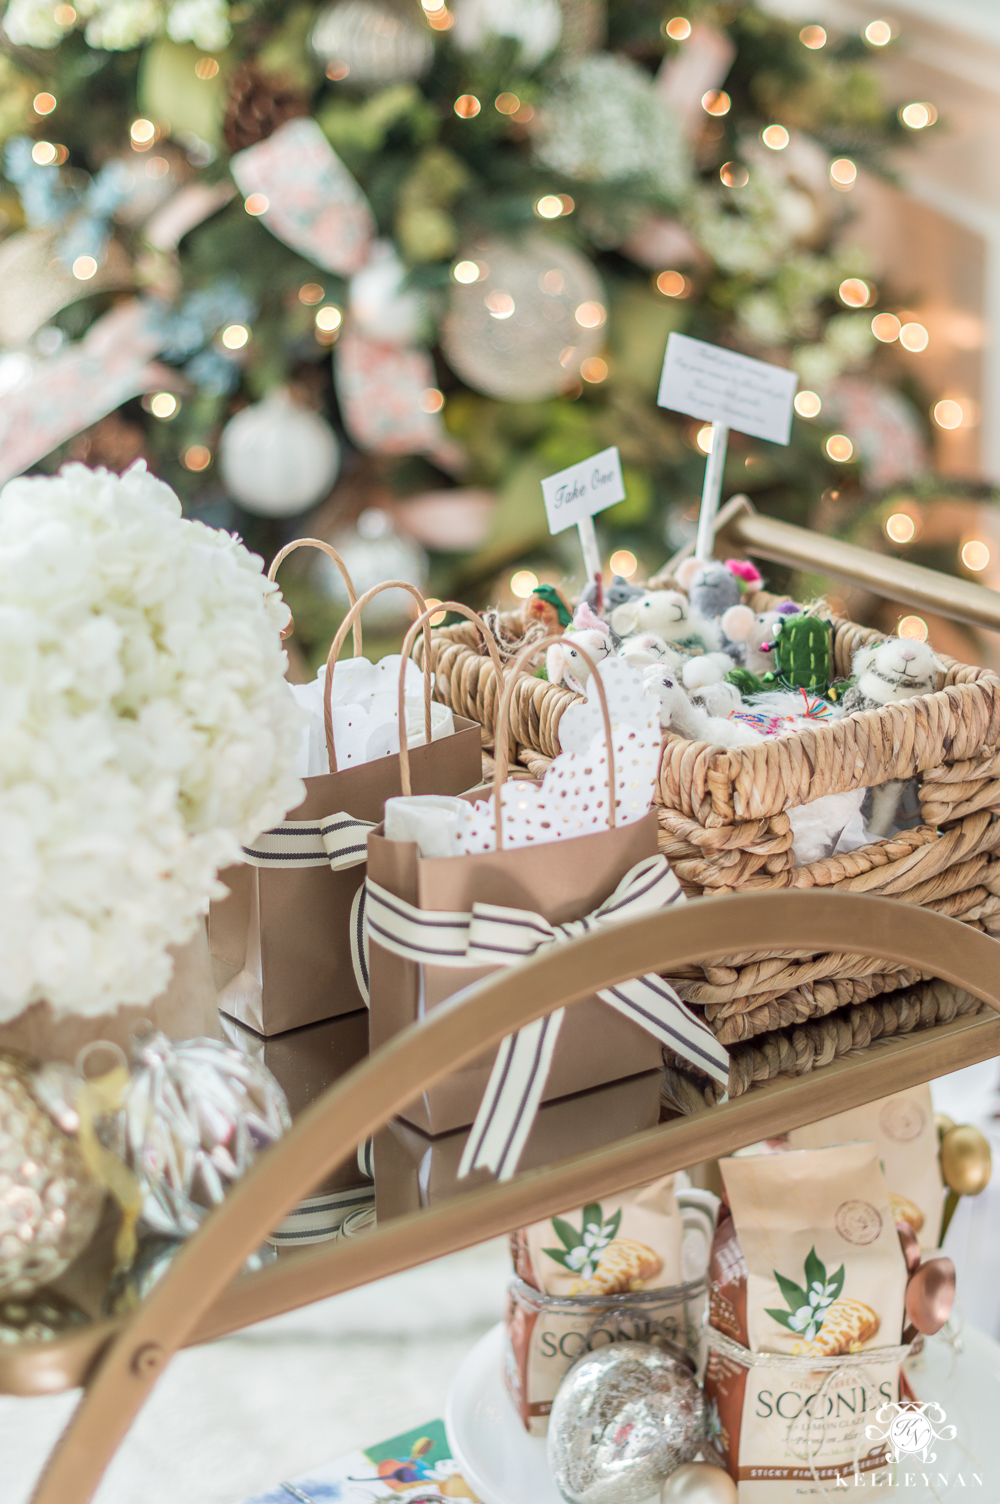 Hostess and neighbor gifts on a holiday bar cart